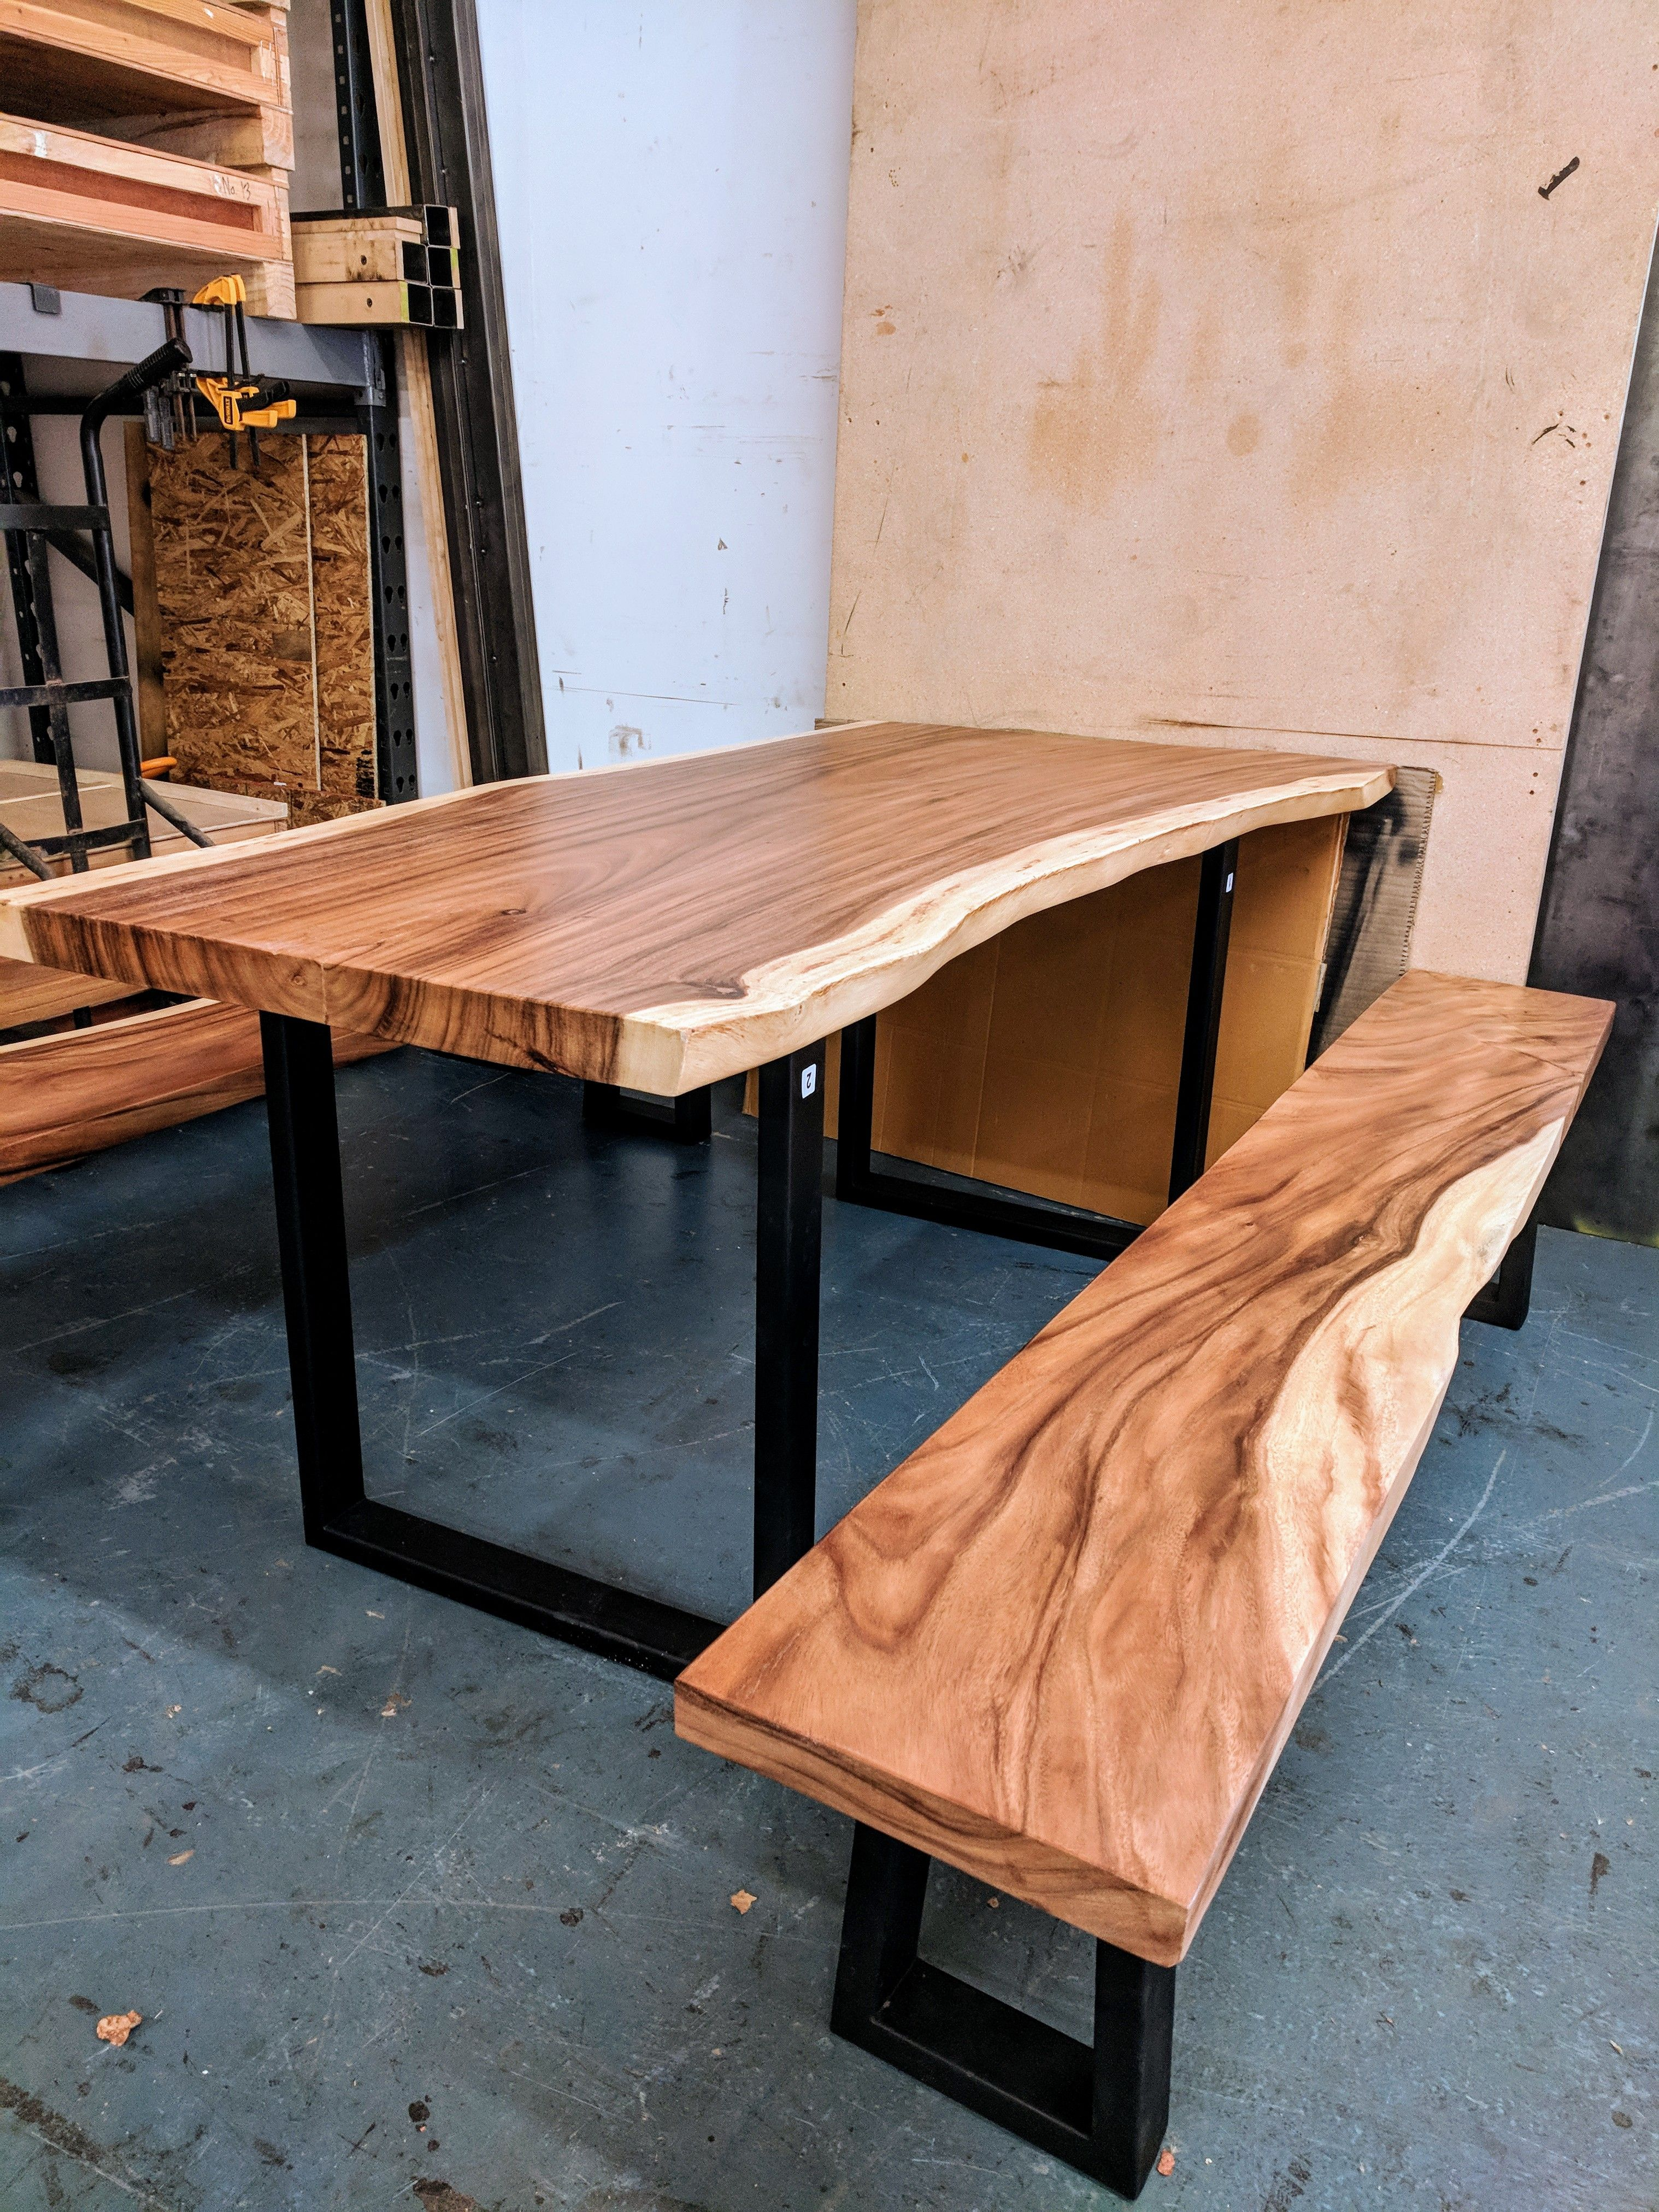 Live Edge Wood Bench Seat Ideal To Match With Live Edge Table As A Side Tabl Live Edge Furniture Design Live Edge Wood Dining Table Dinning Table With Bench